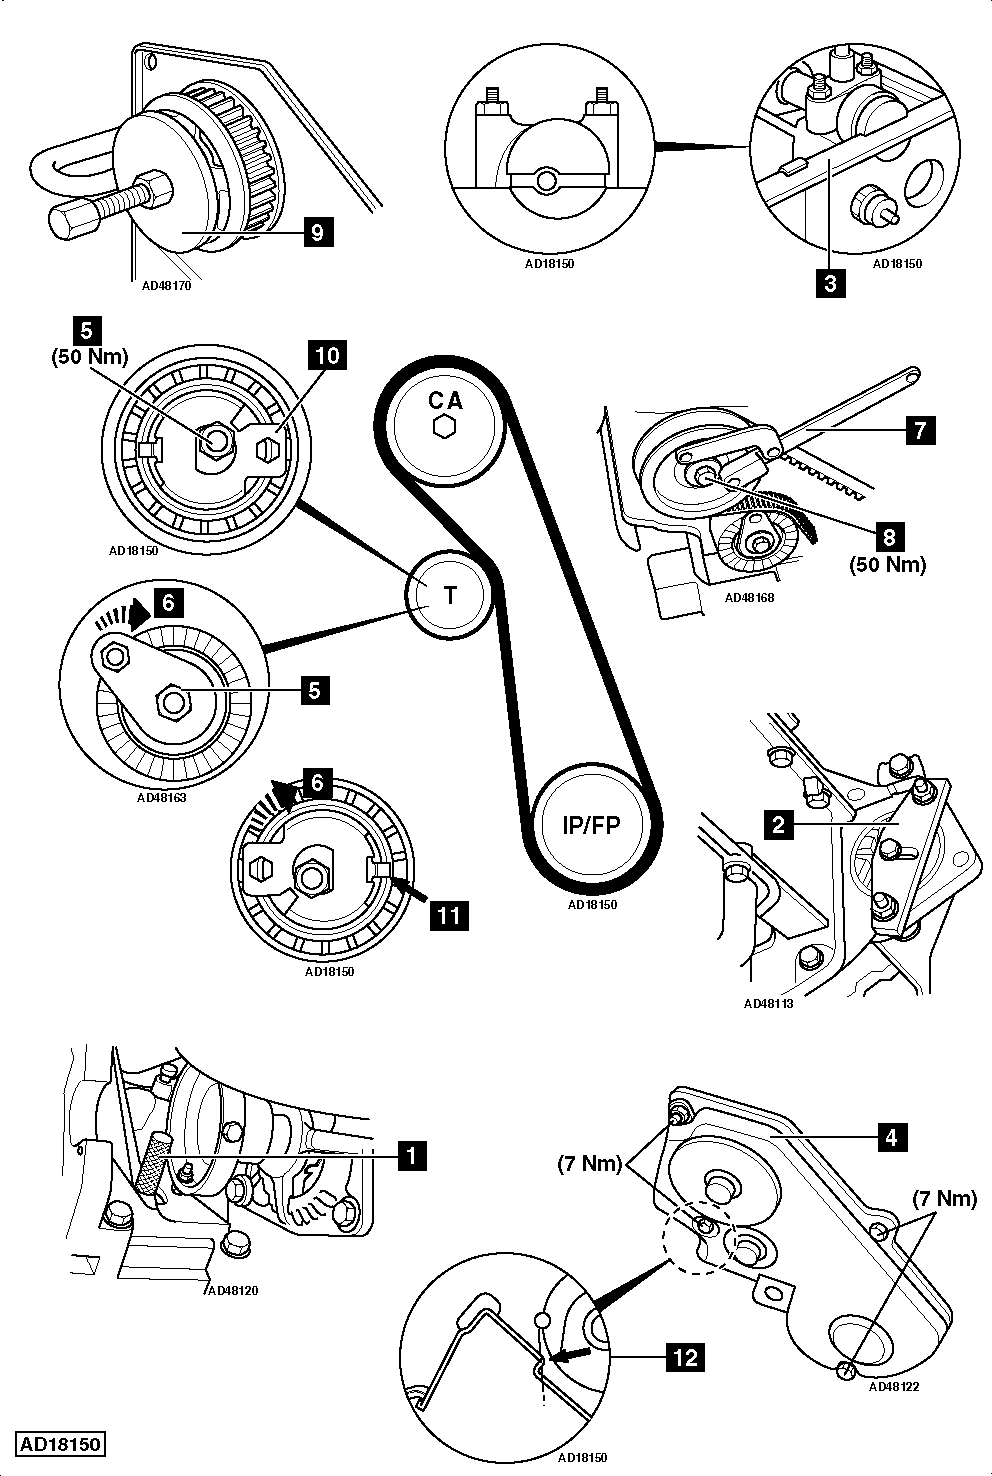 How To Replace Timing Belt On Ford Focus 18 Tdci 2002 2005 Engine Diagrams 2001 Diagram